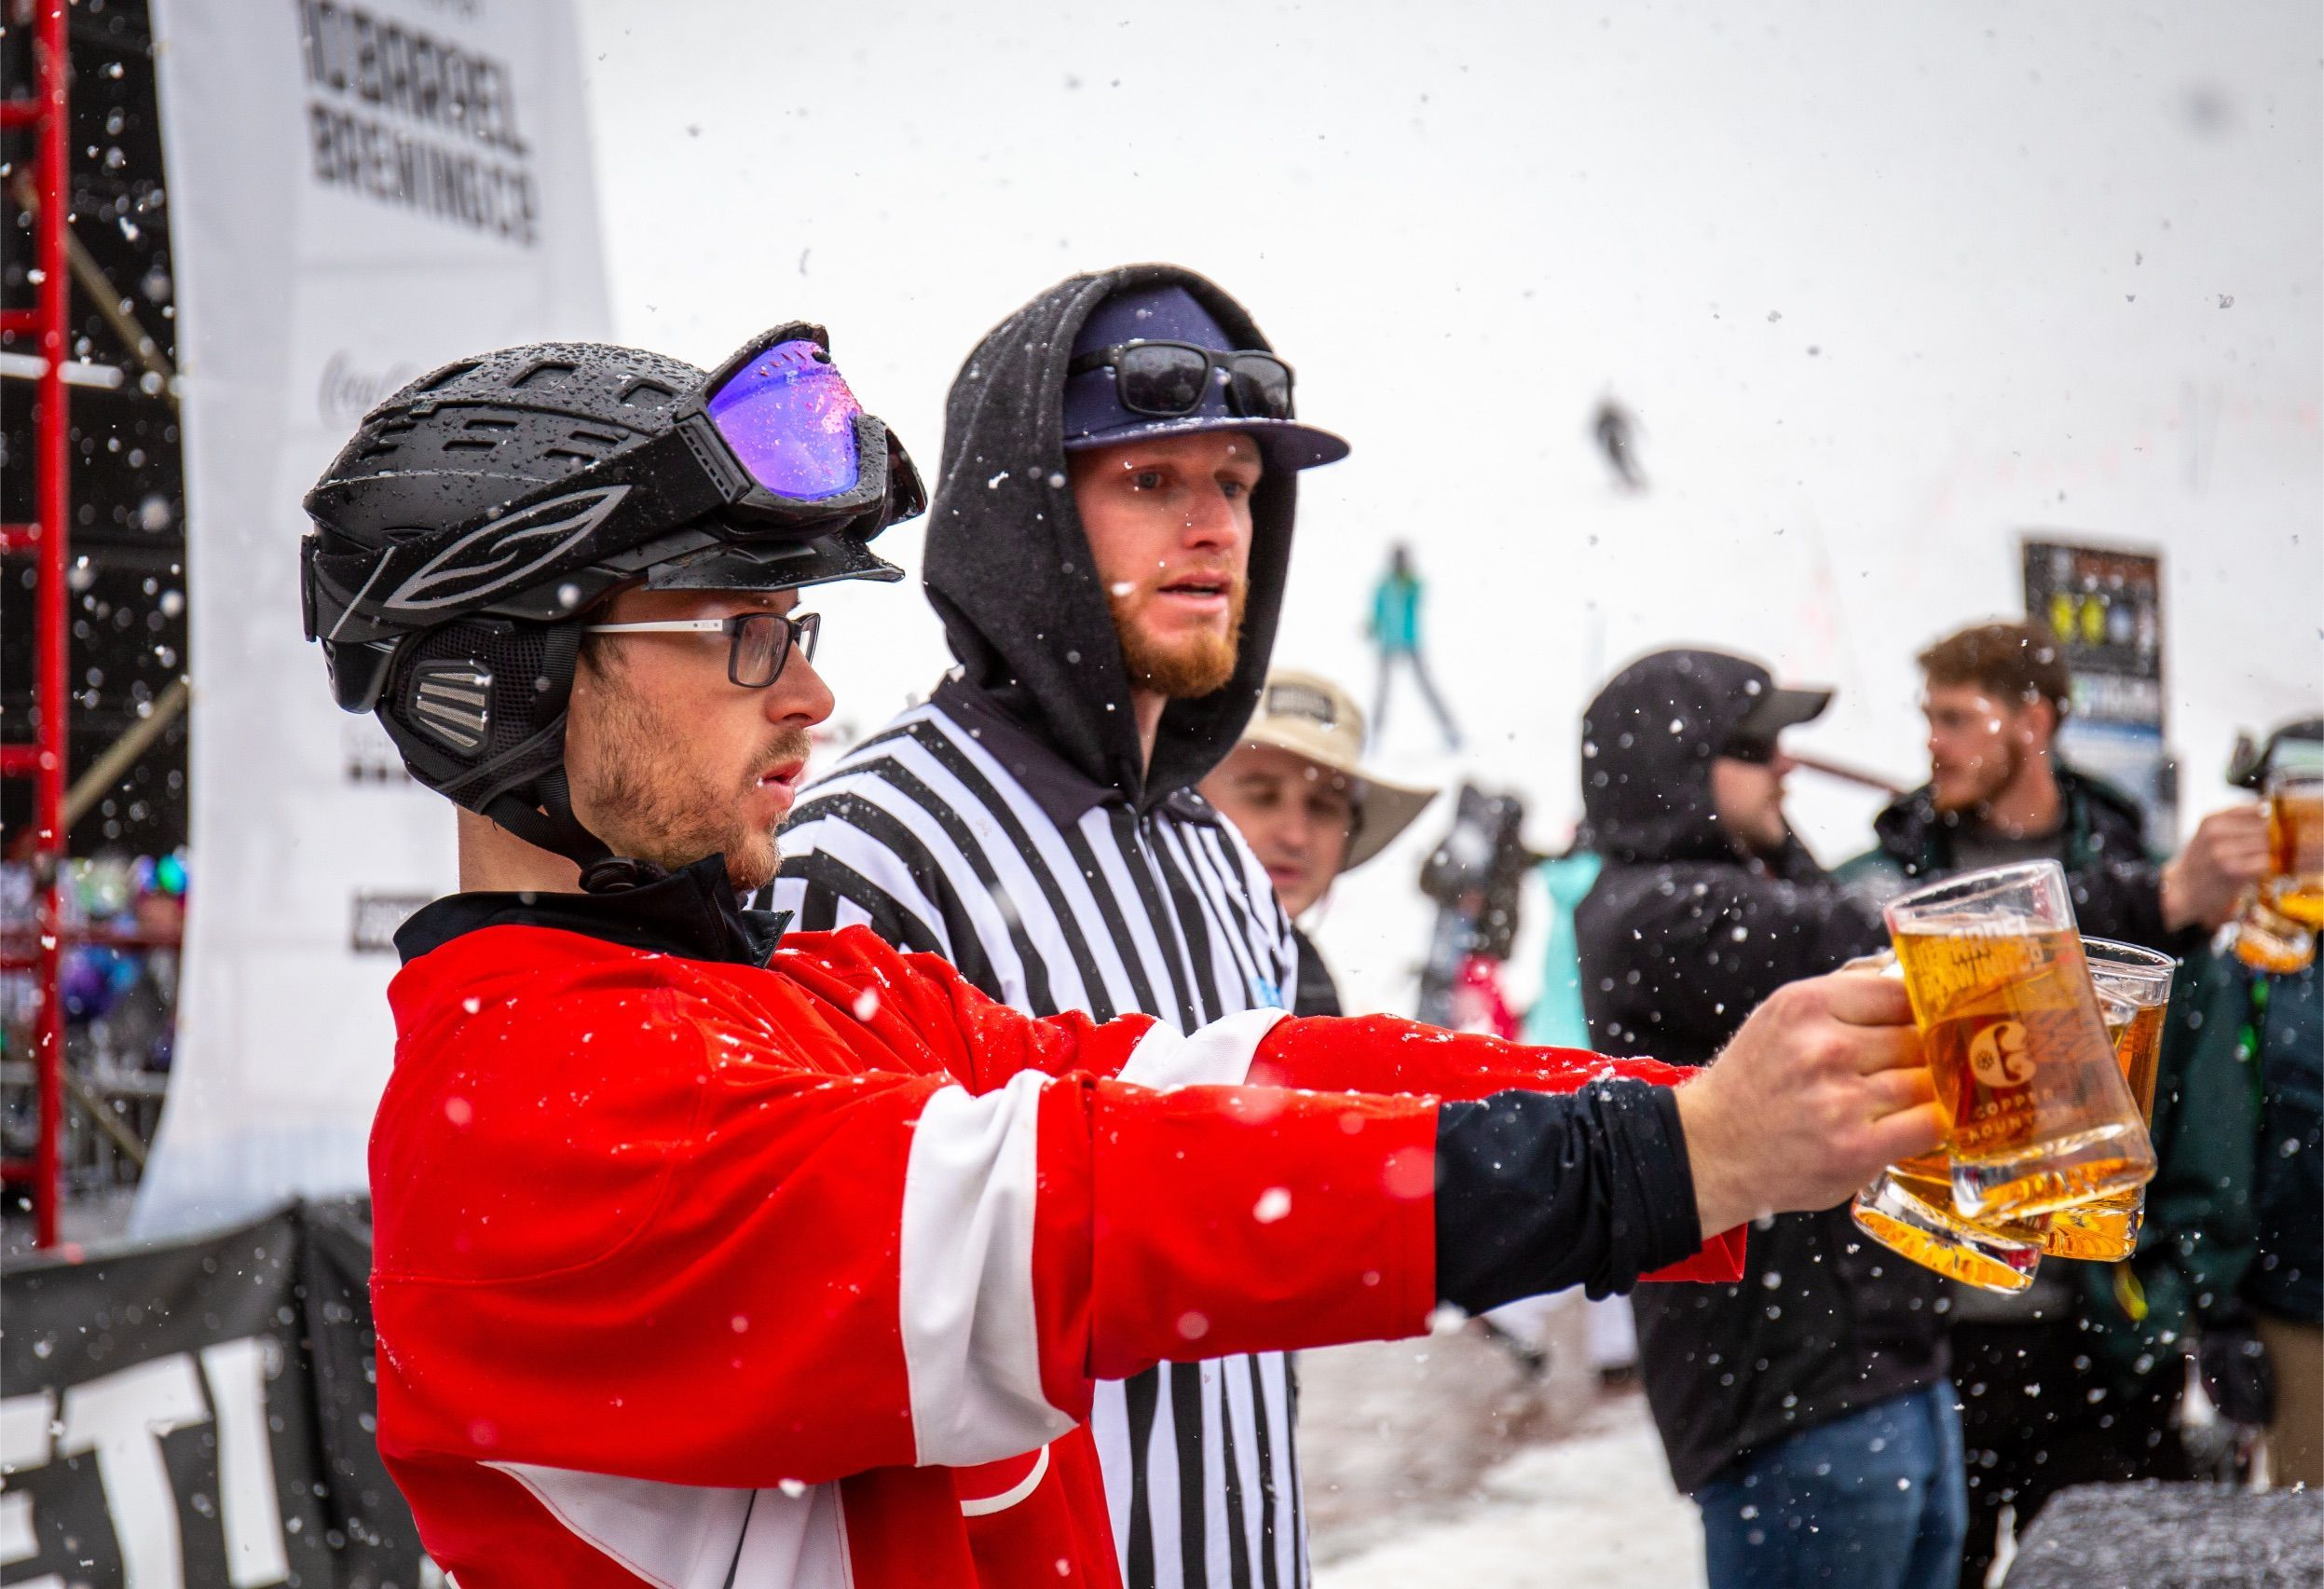 Click For 2019 Event Schedule Copper Mountain Ski Resort Events Apes Weekend Fun Things To Do Family Ac Copper Mountain Ski Resort Weekend Fun Music Event